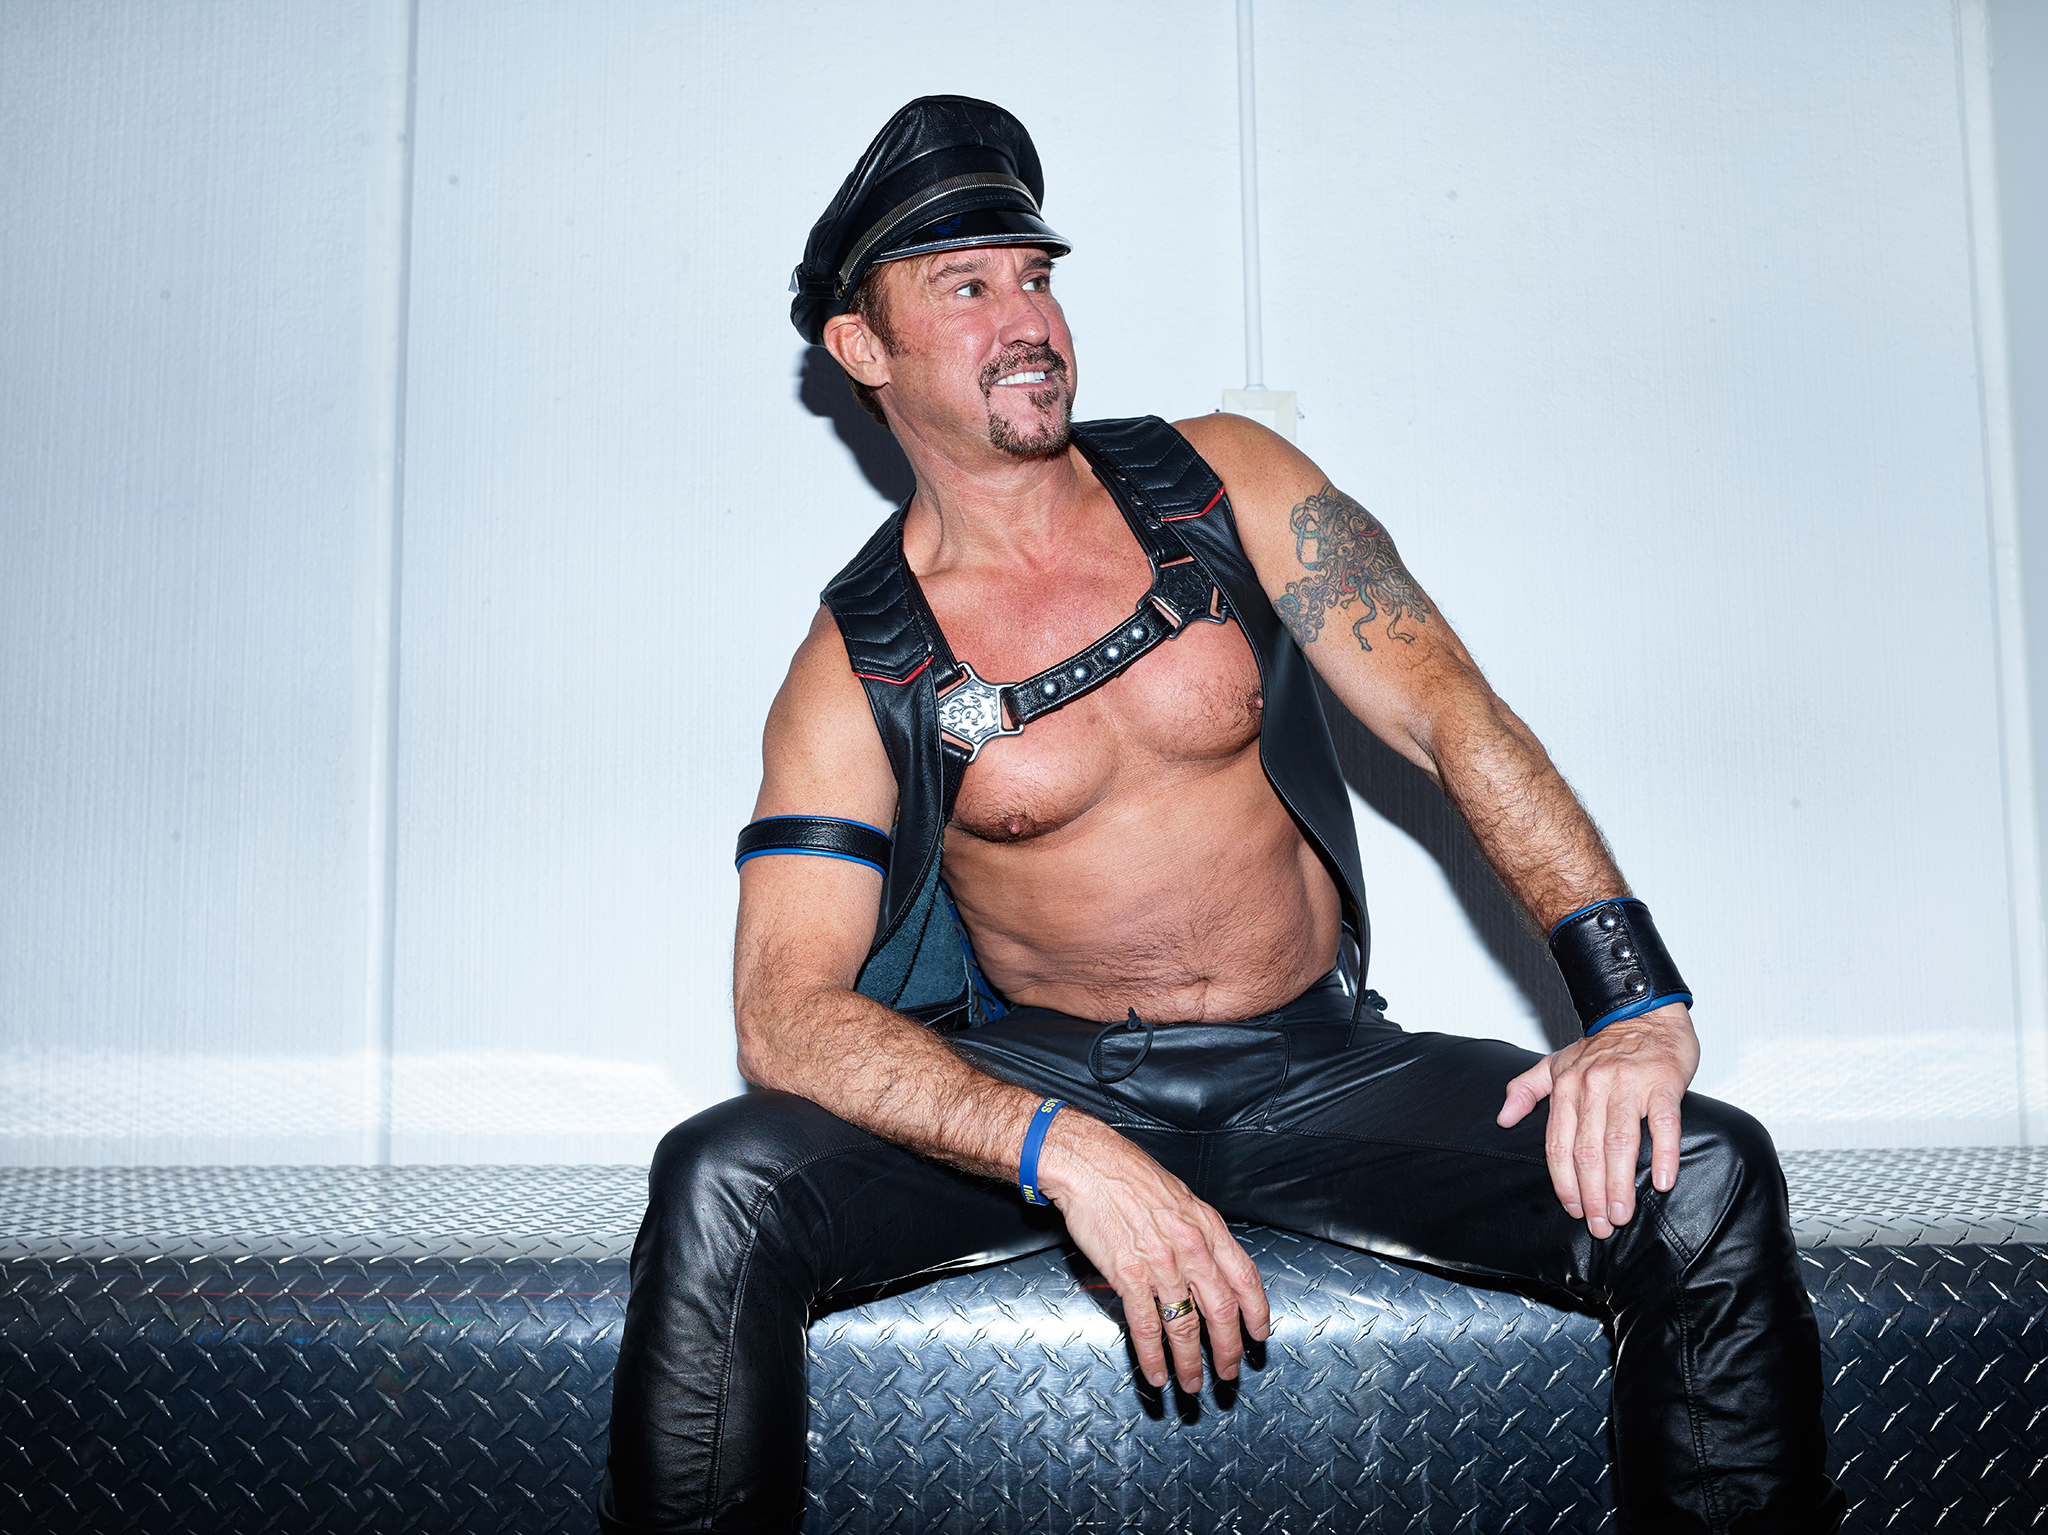 The 36th annual IML weekend culminated in the coronation of International Mr. Leather 2014 in a contest at the Harris Theater.